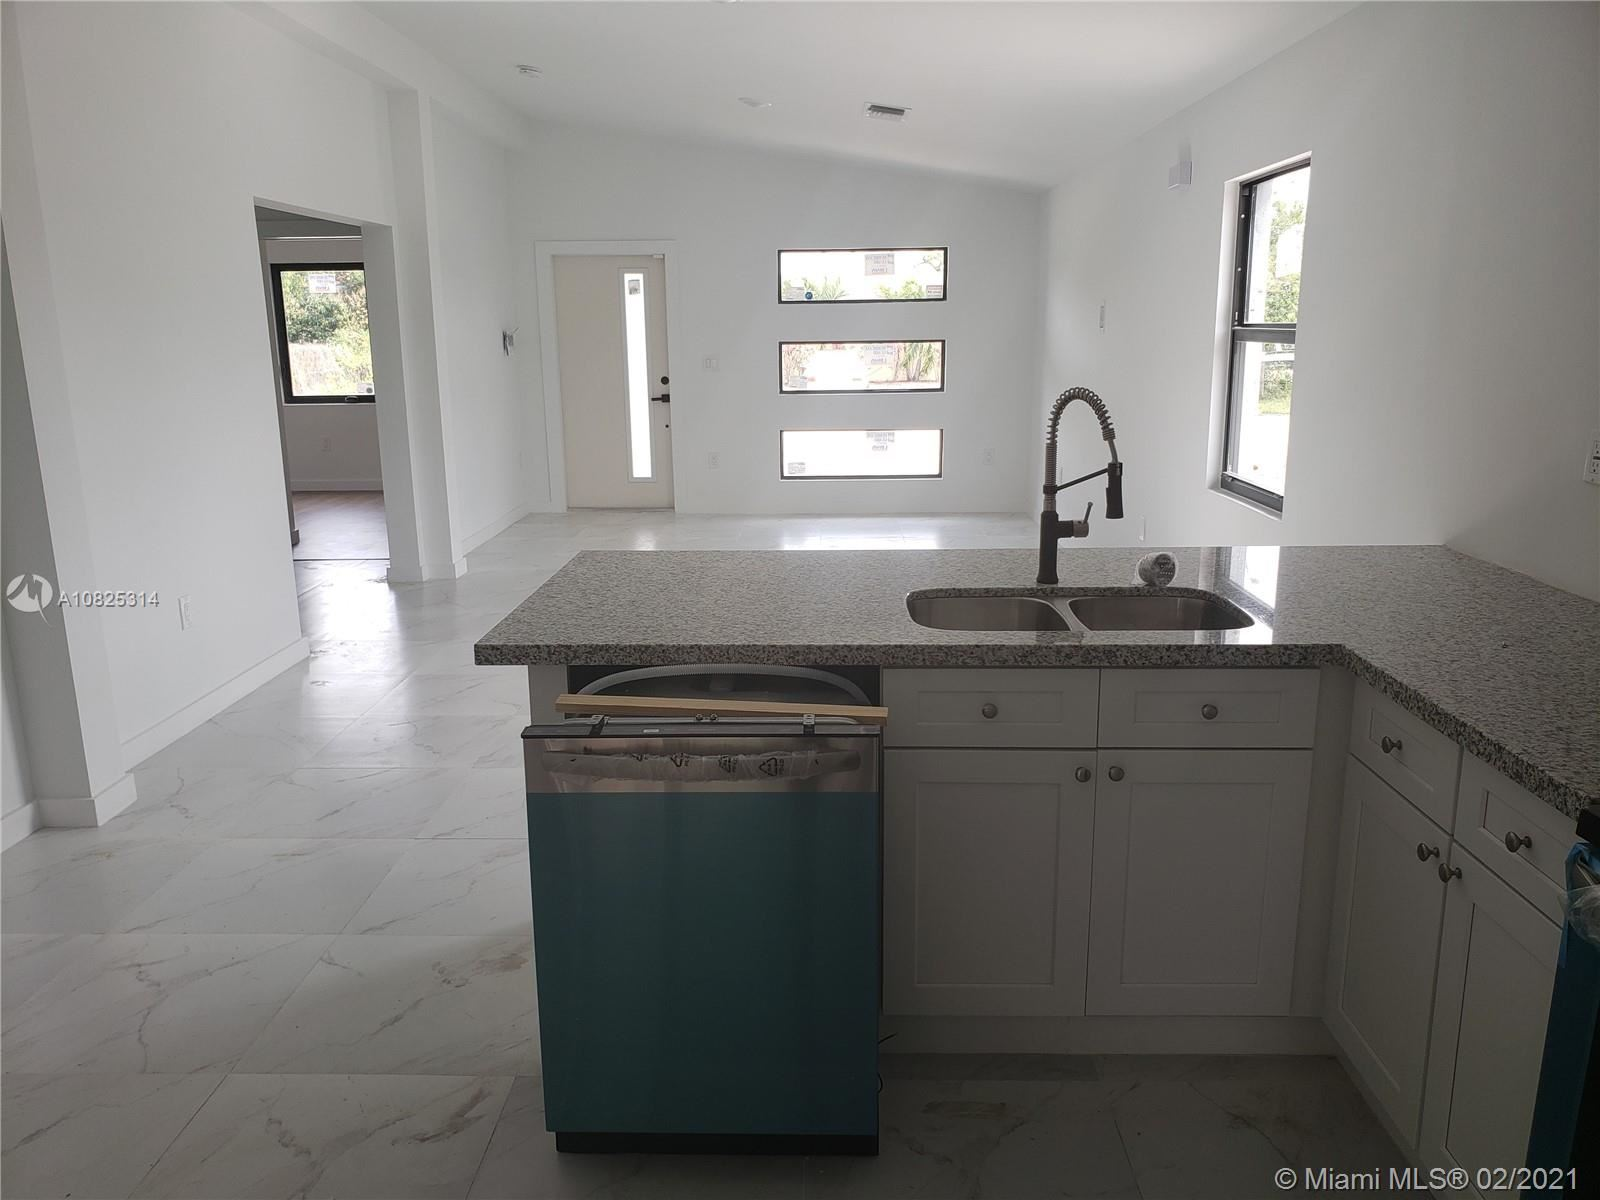 Photo of 18 Nw Ter, Oakland Park, FL 33311 (MLS # A10825314)